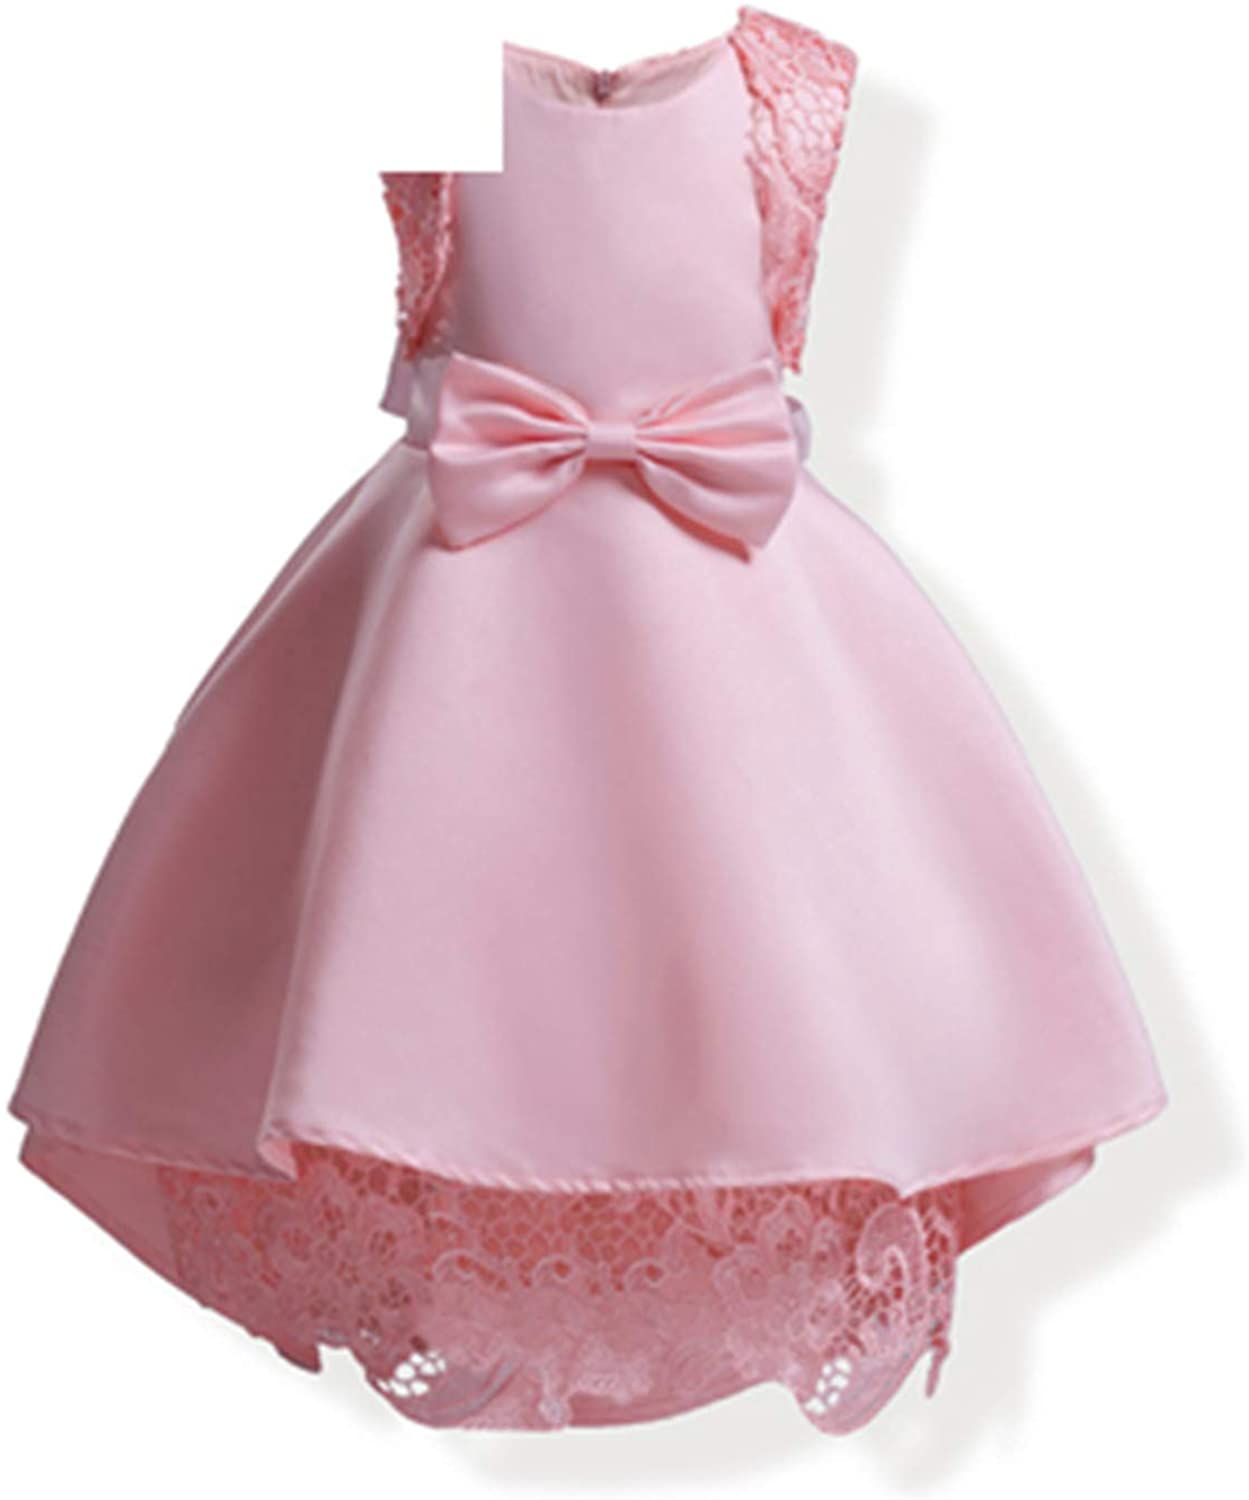 Notapplicable Girl Clothes Dress Bow Accessories Cotton Lining 3-9 Y Children's